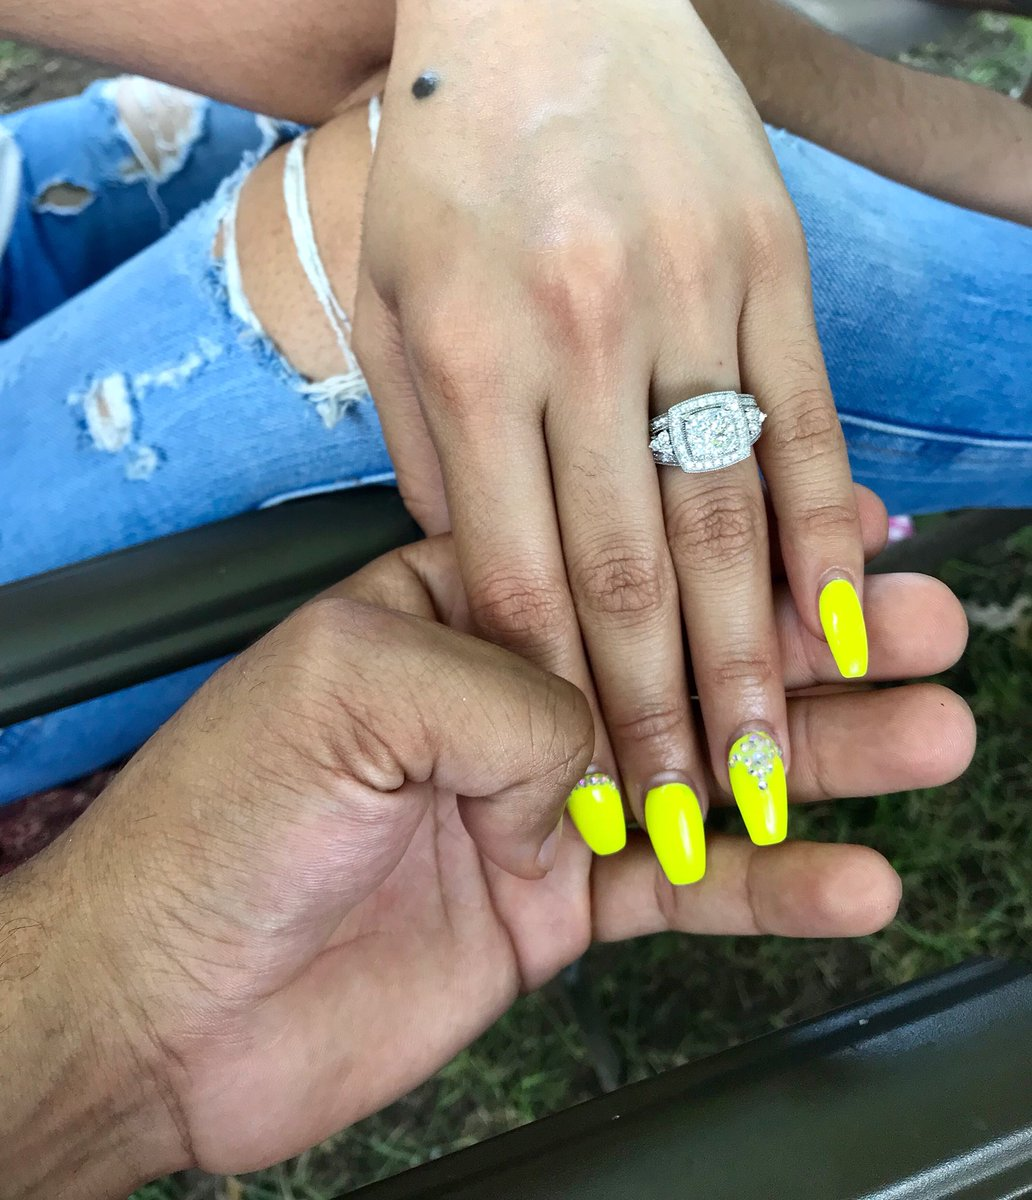 RT @imchasingdreamz: GUESS WHAT? 6 months later we're engaged and better than ever!!! https://t.co/qYNMBd0N2X